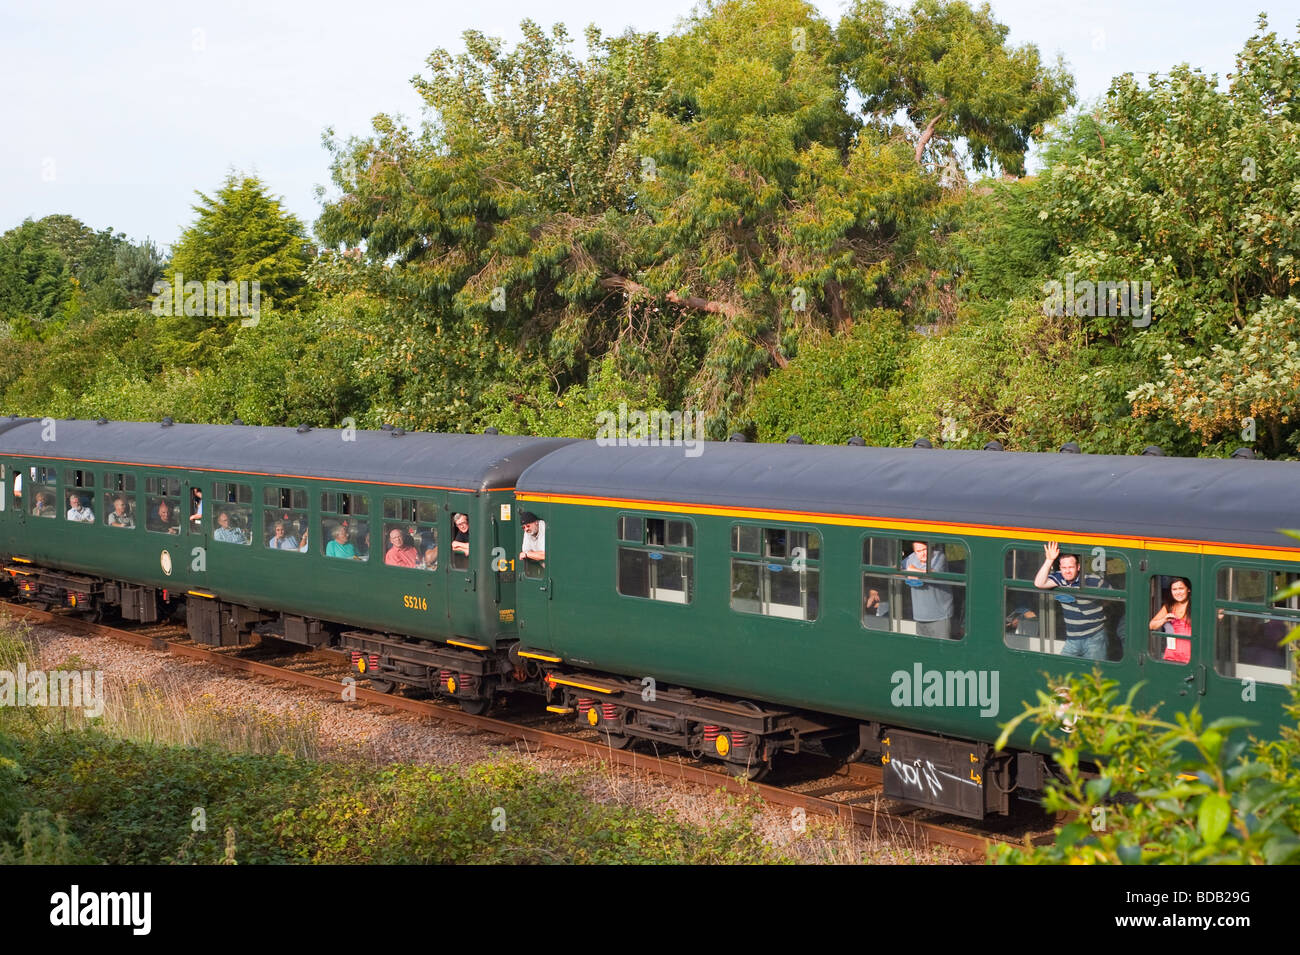 Carriages with passengers in a train on the Suffolk line in Beccles Suffolk Uk in 2009 - Stock Image